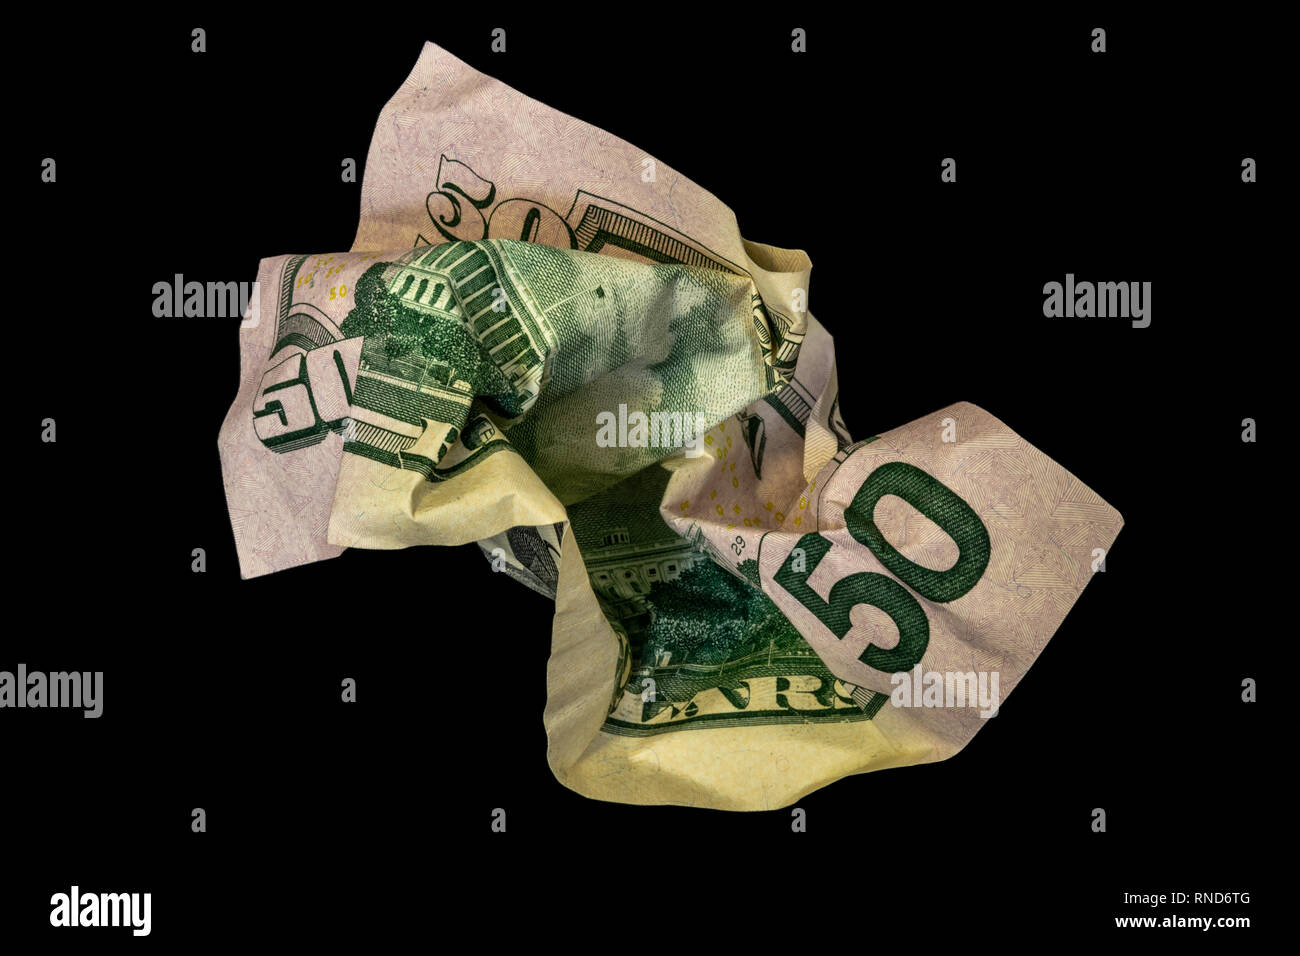 Crumpled fifty dollar bill isolated on black background Stock Photo